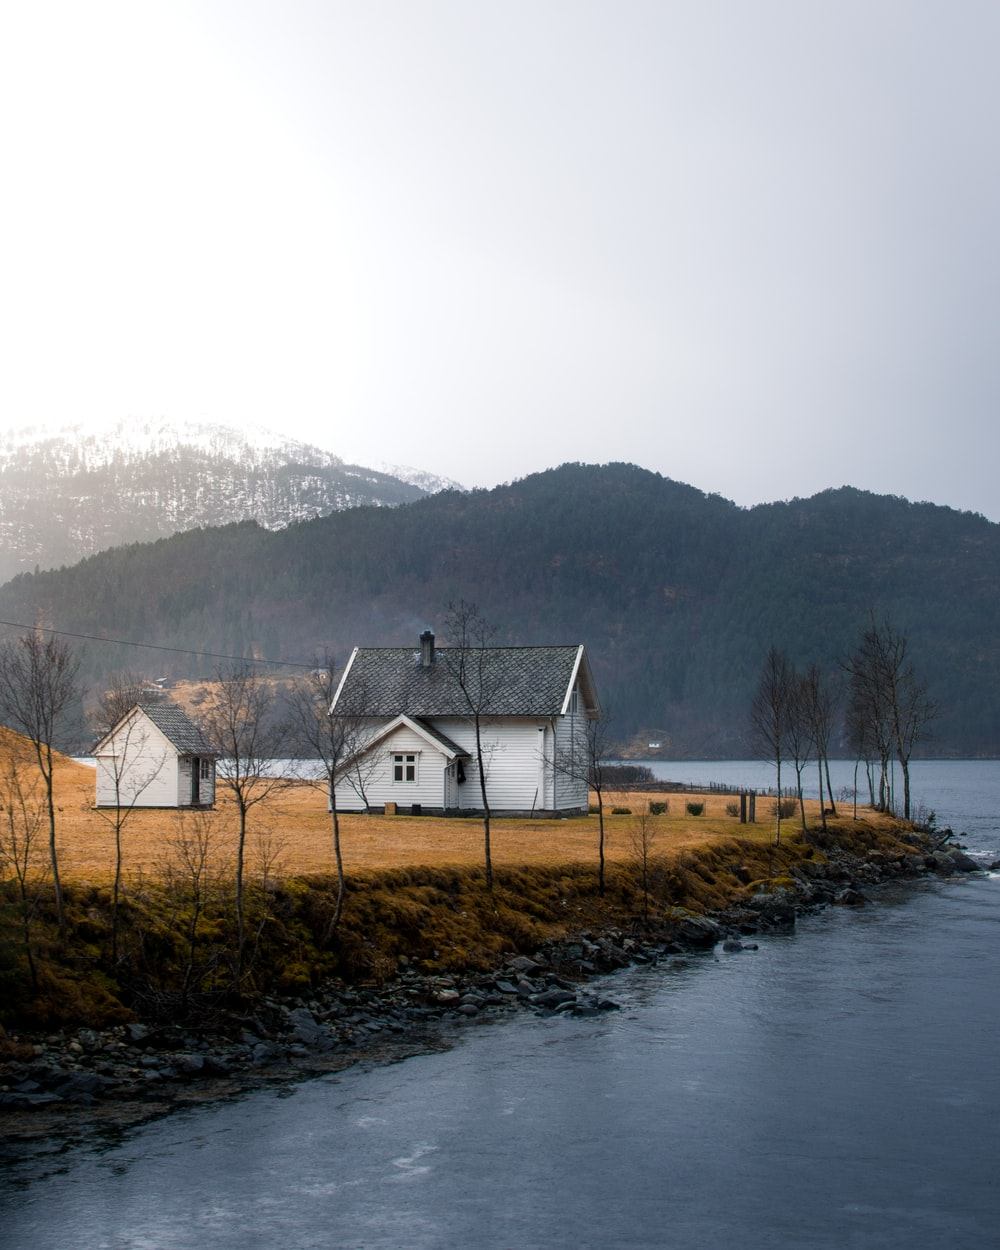 houses on shore near body of water